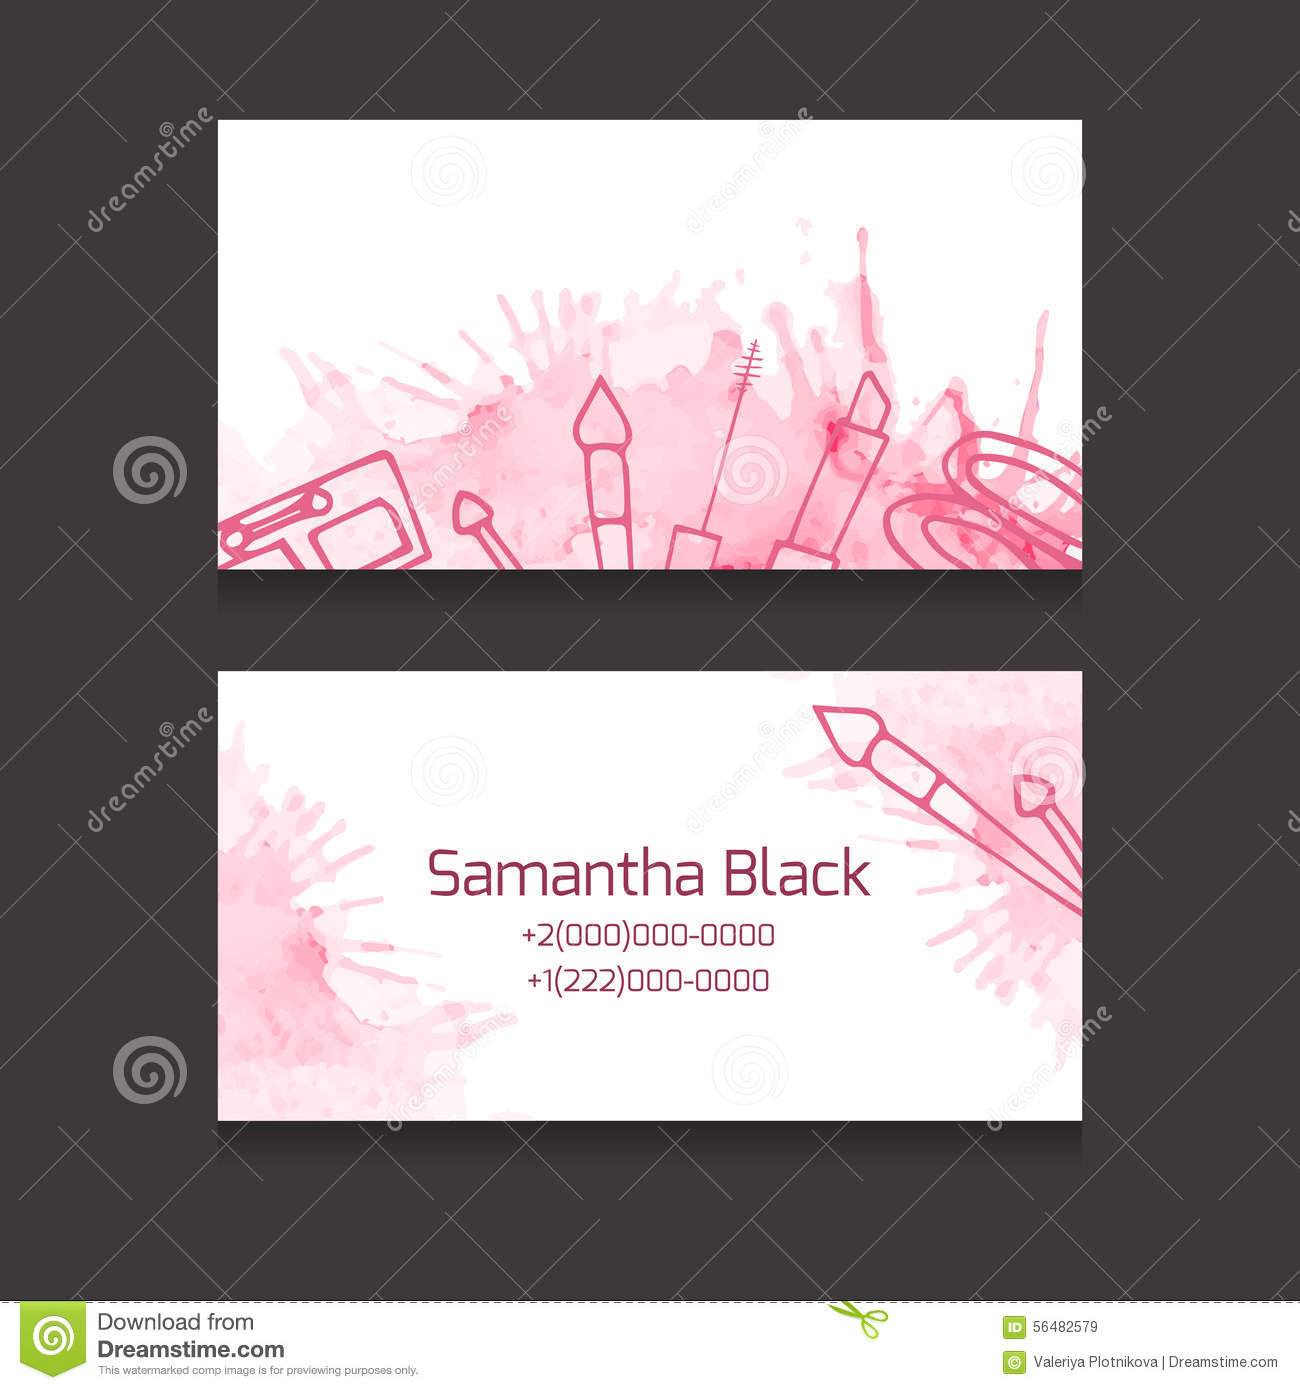 Makeup artist business card stock vector illustration of computer download makeup artist business card stock vector illustration of computer ideas 56482579 cheaphphosting Image collections